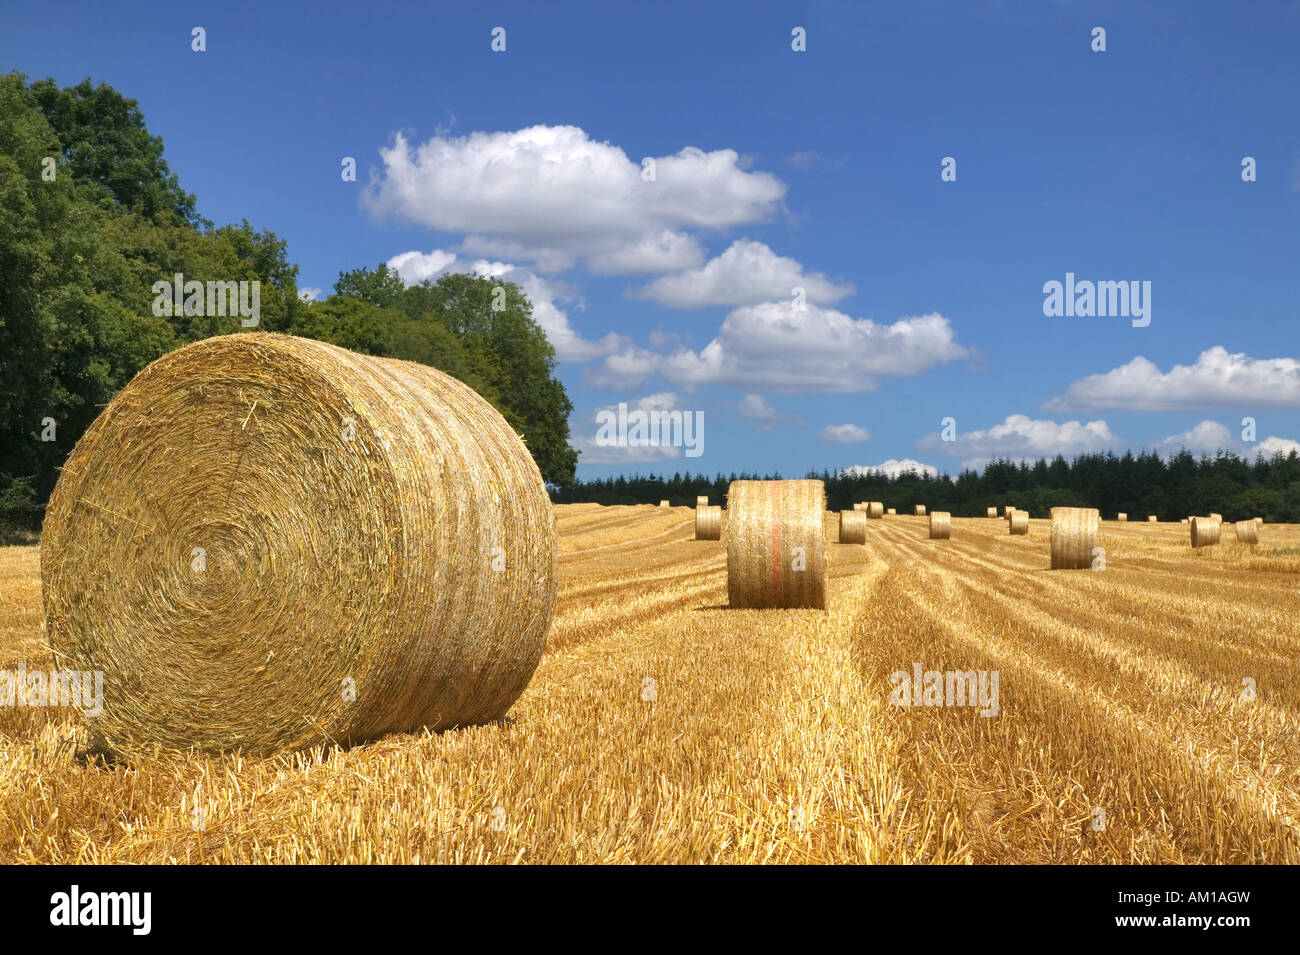 Hay bales in a field on a bright summers day - Stock Image